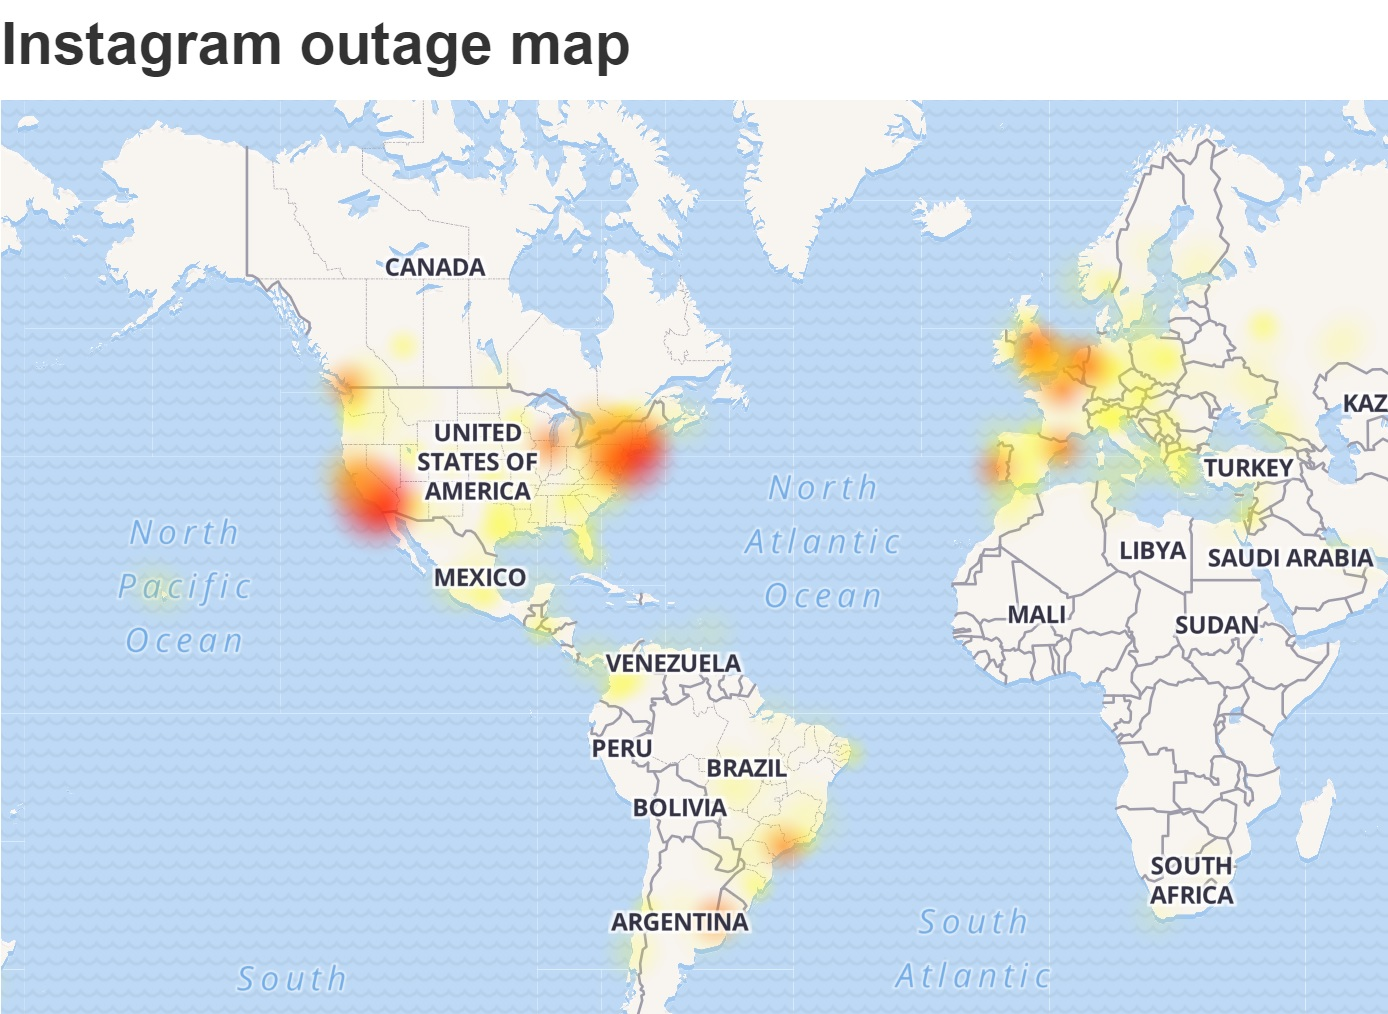 Instagram down: Mass worldwide outage forces users to seek refuge on Twitter